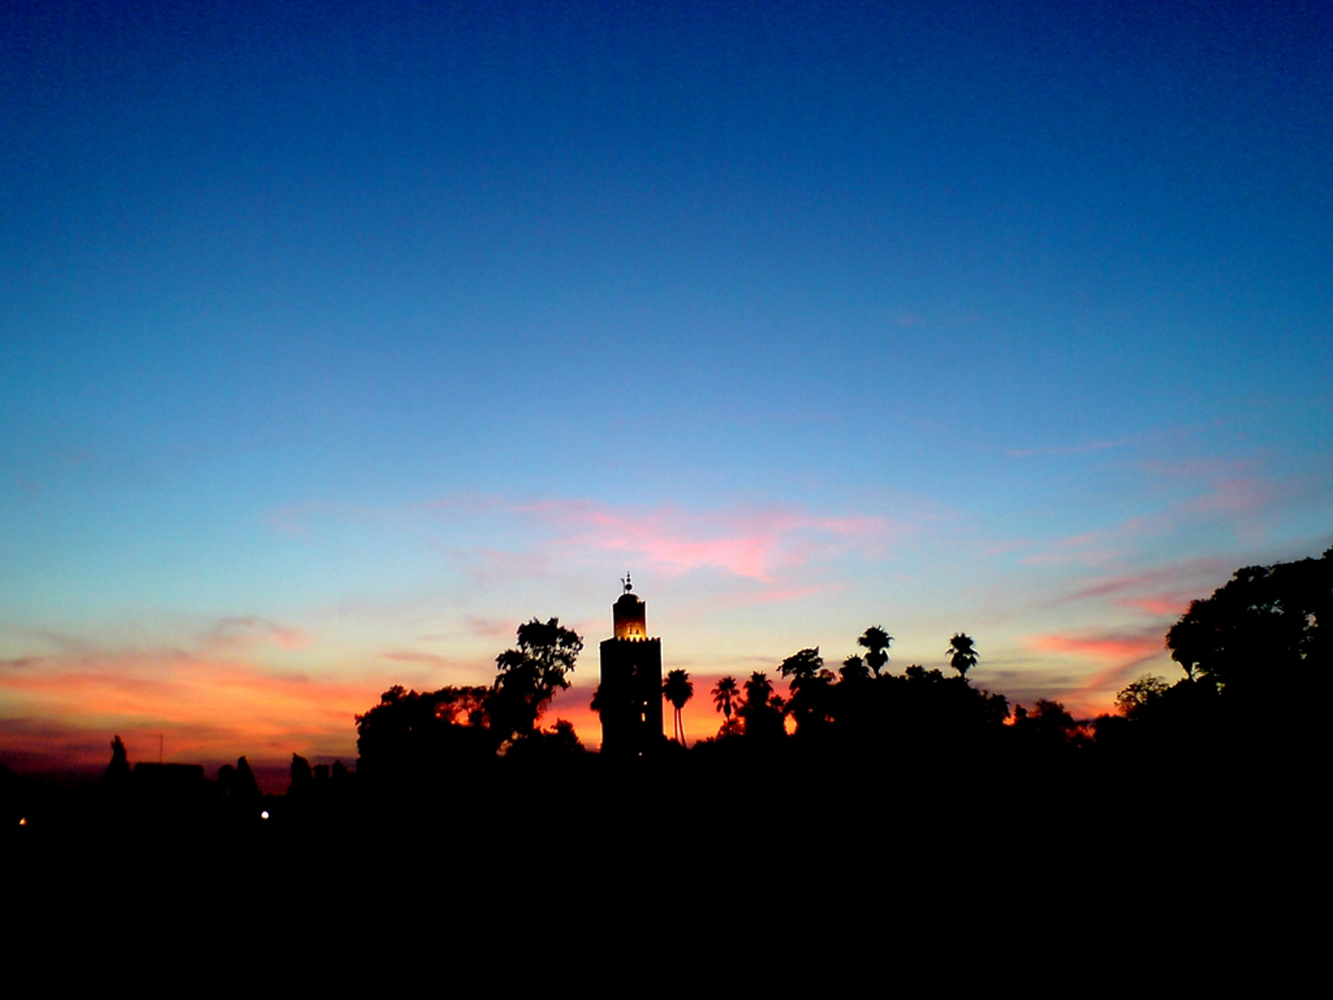 Sunset in marrakech photo